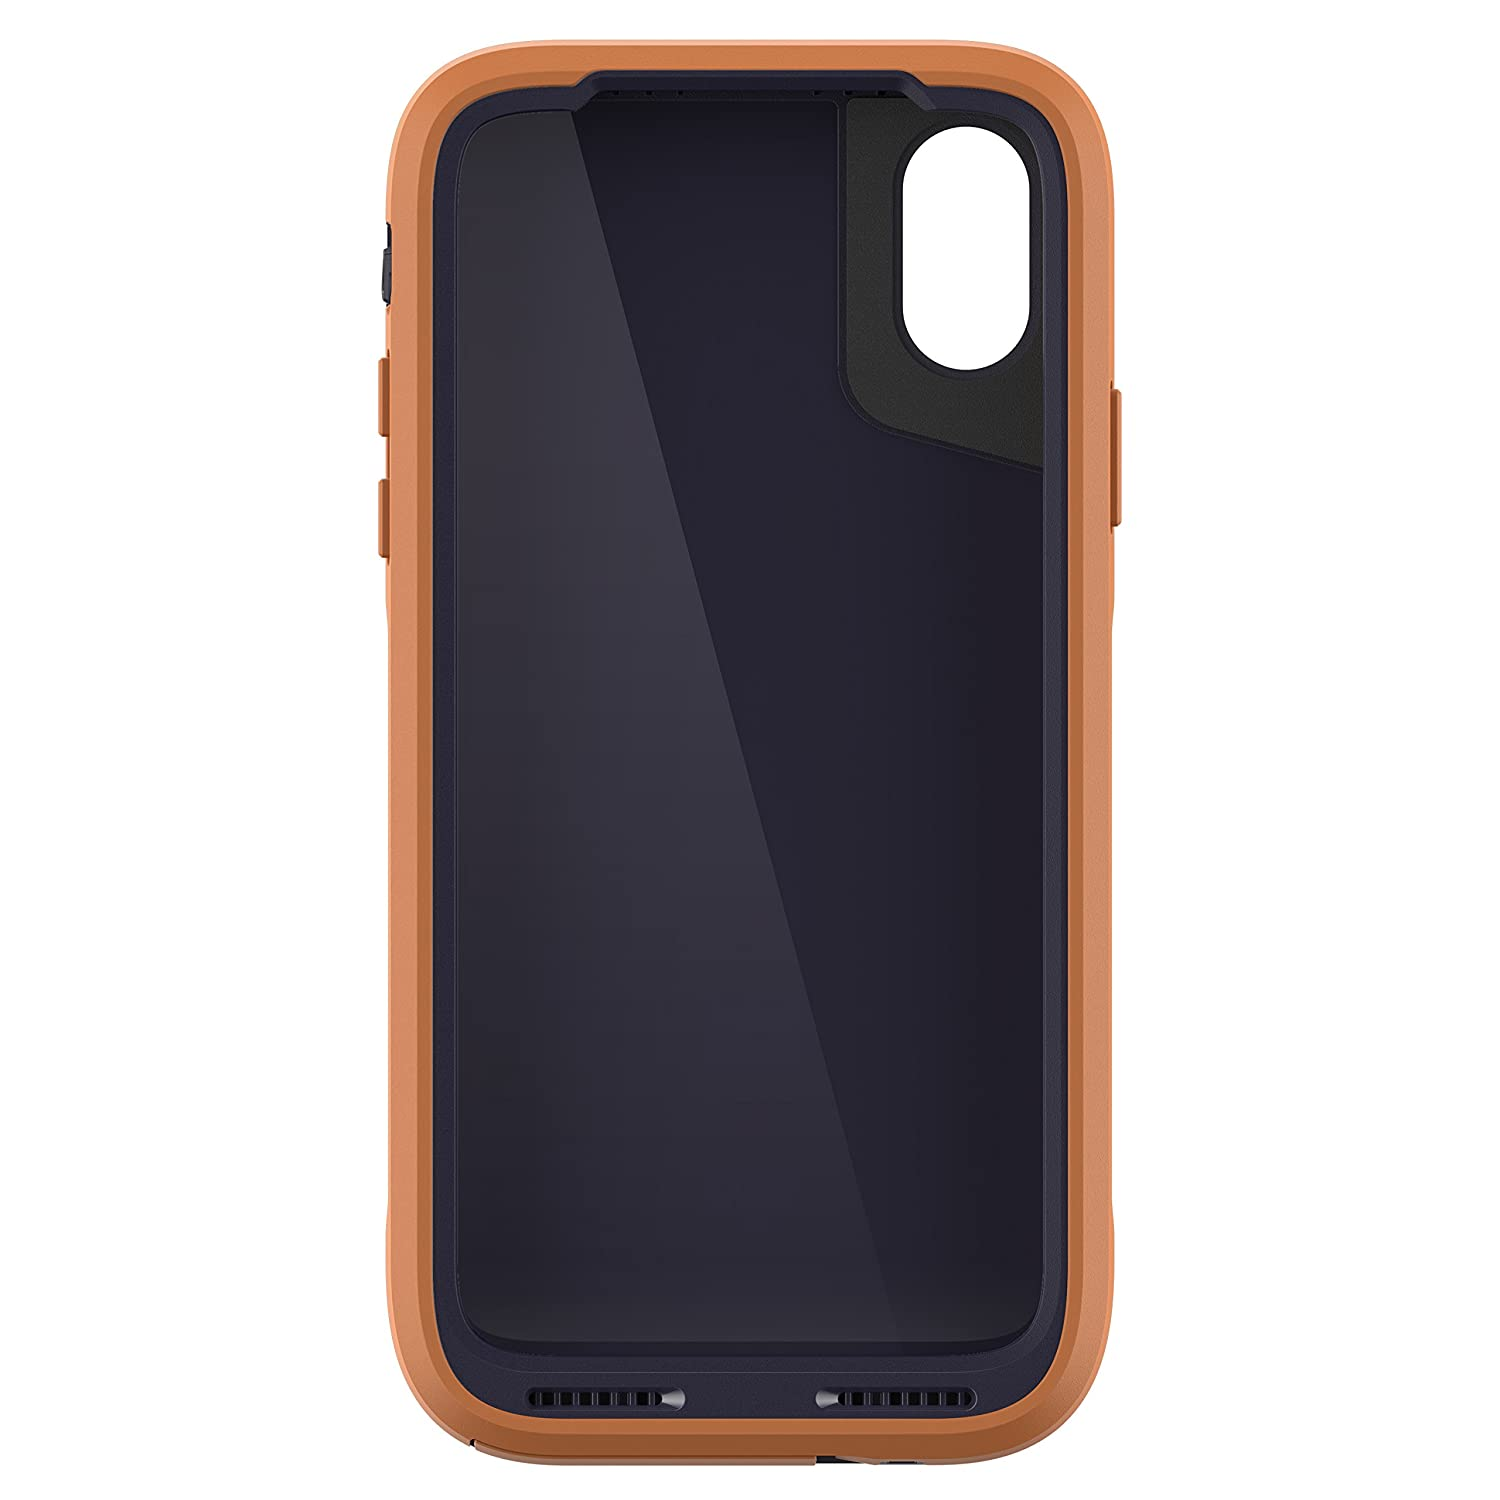 OtterBox Pursuit Series Slim Case for iPhone X/Xs (ONLY) - Bulk Packaging - Desert Spring (Dark Blue/Light Brown)